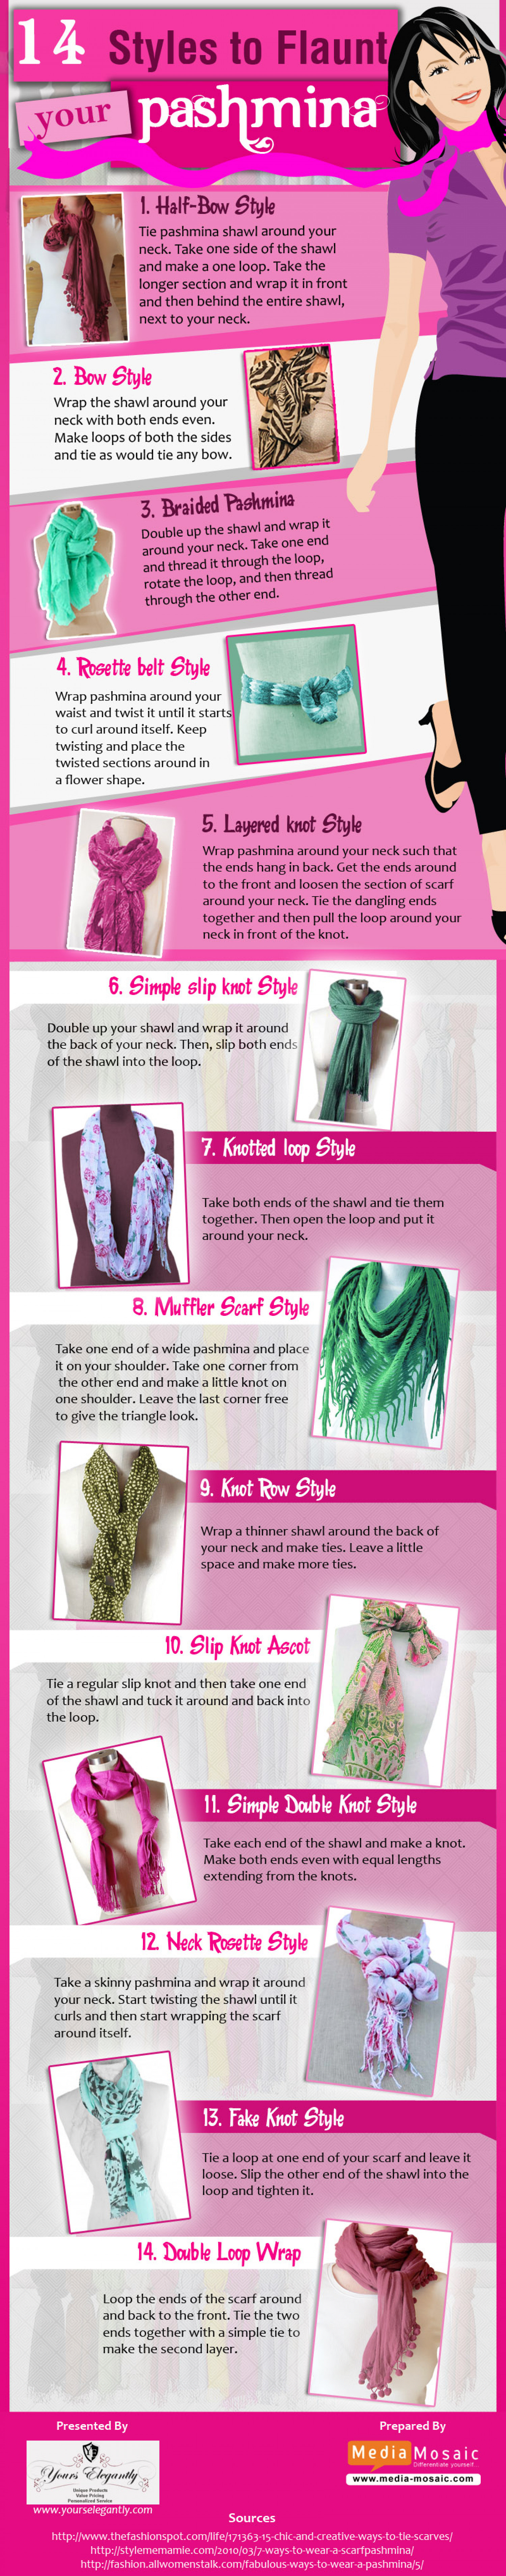 14 Styles to Flaunt your Pashmina Infographic